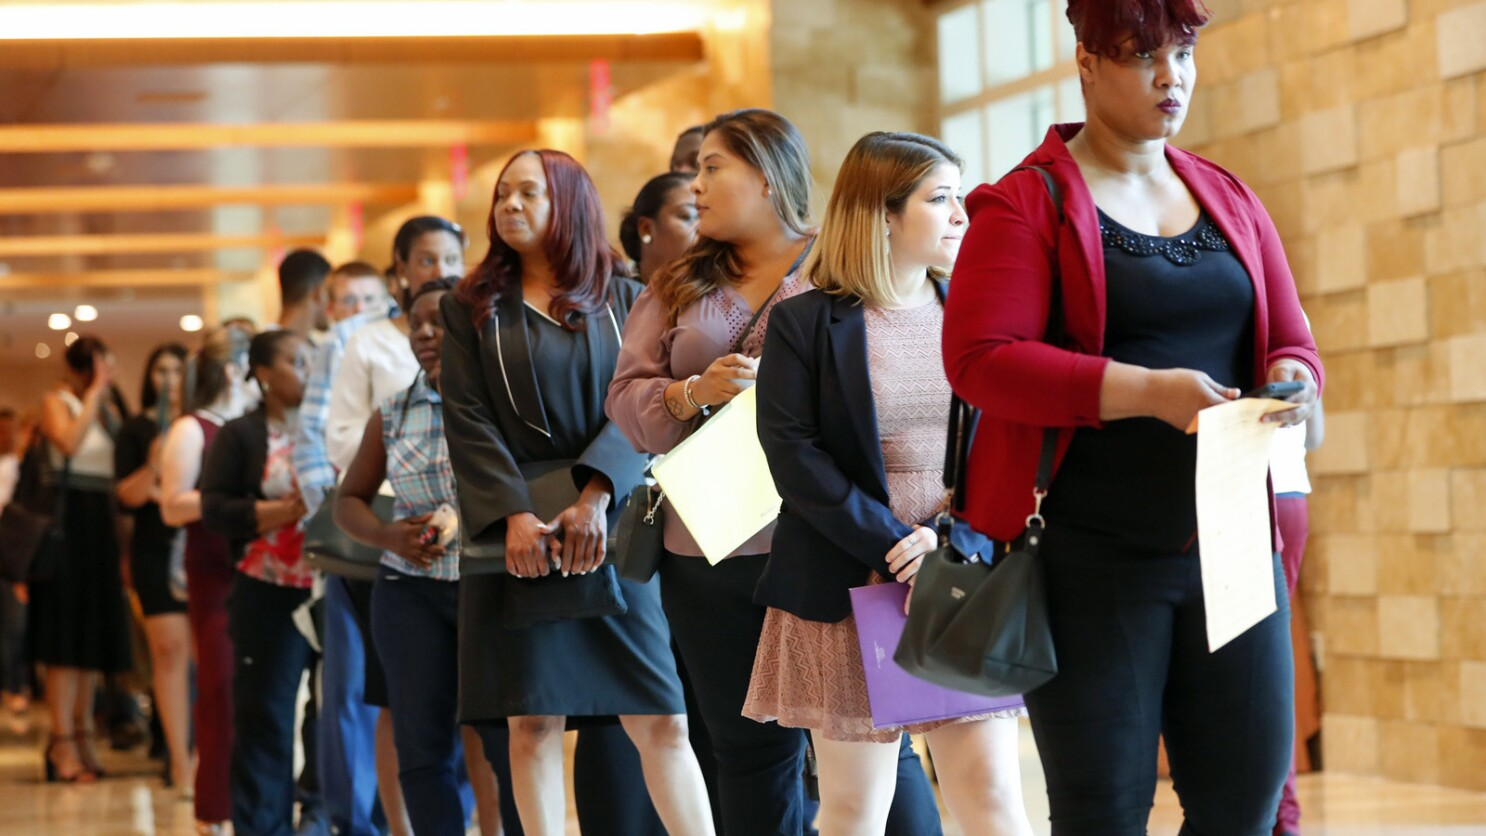 U S  job growth rebounds in June, lowering Fed's incentive